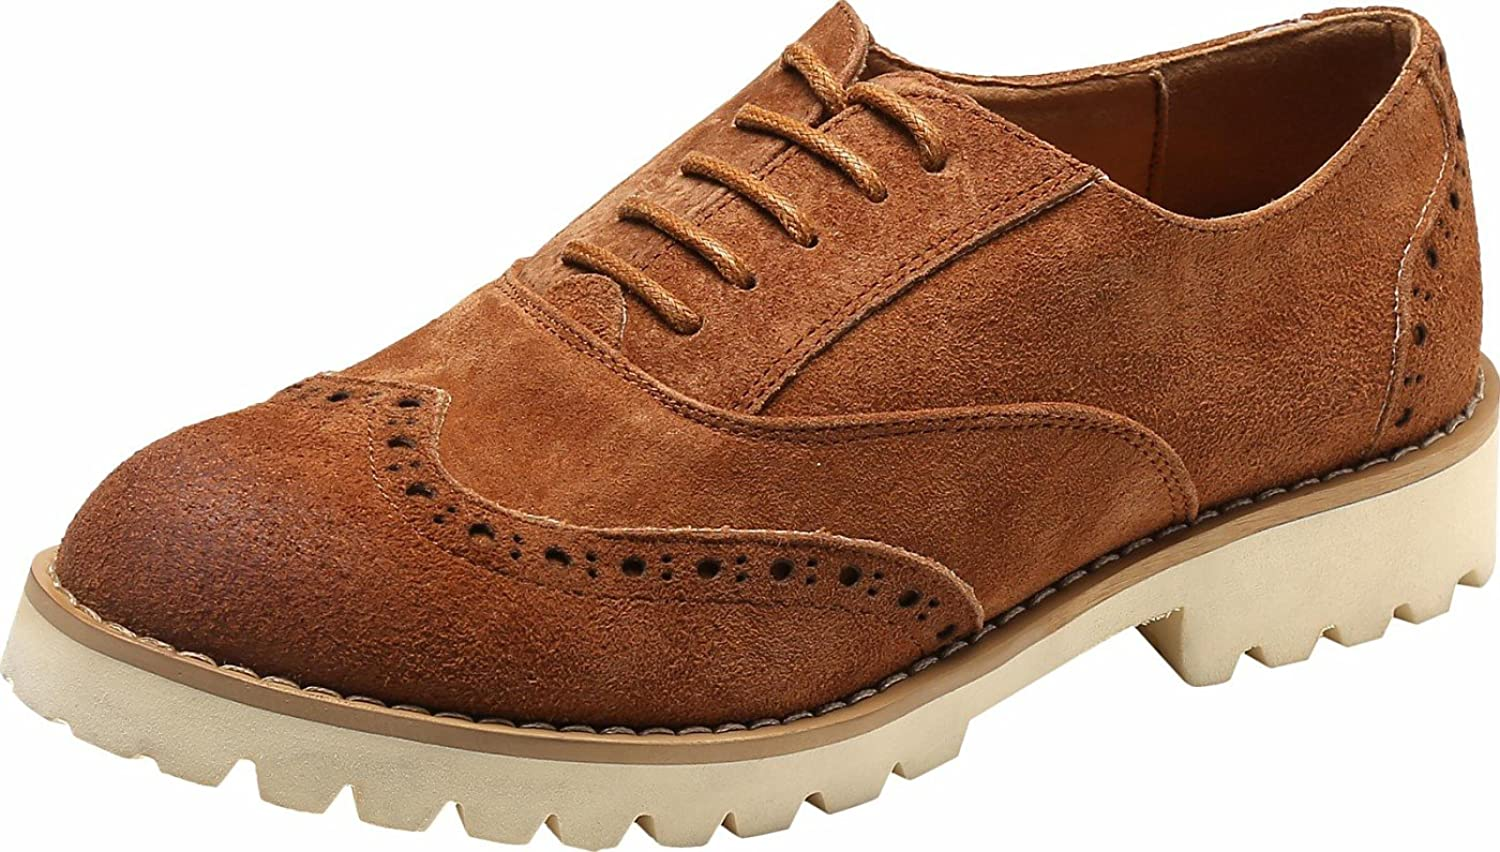 Ulite Womens Solid color Perforated Suede Leather Lace-up Casual Oxfords, Comfortable Simple Walking shoes